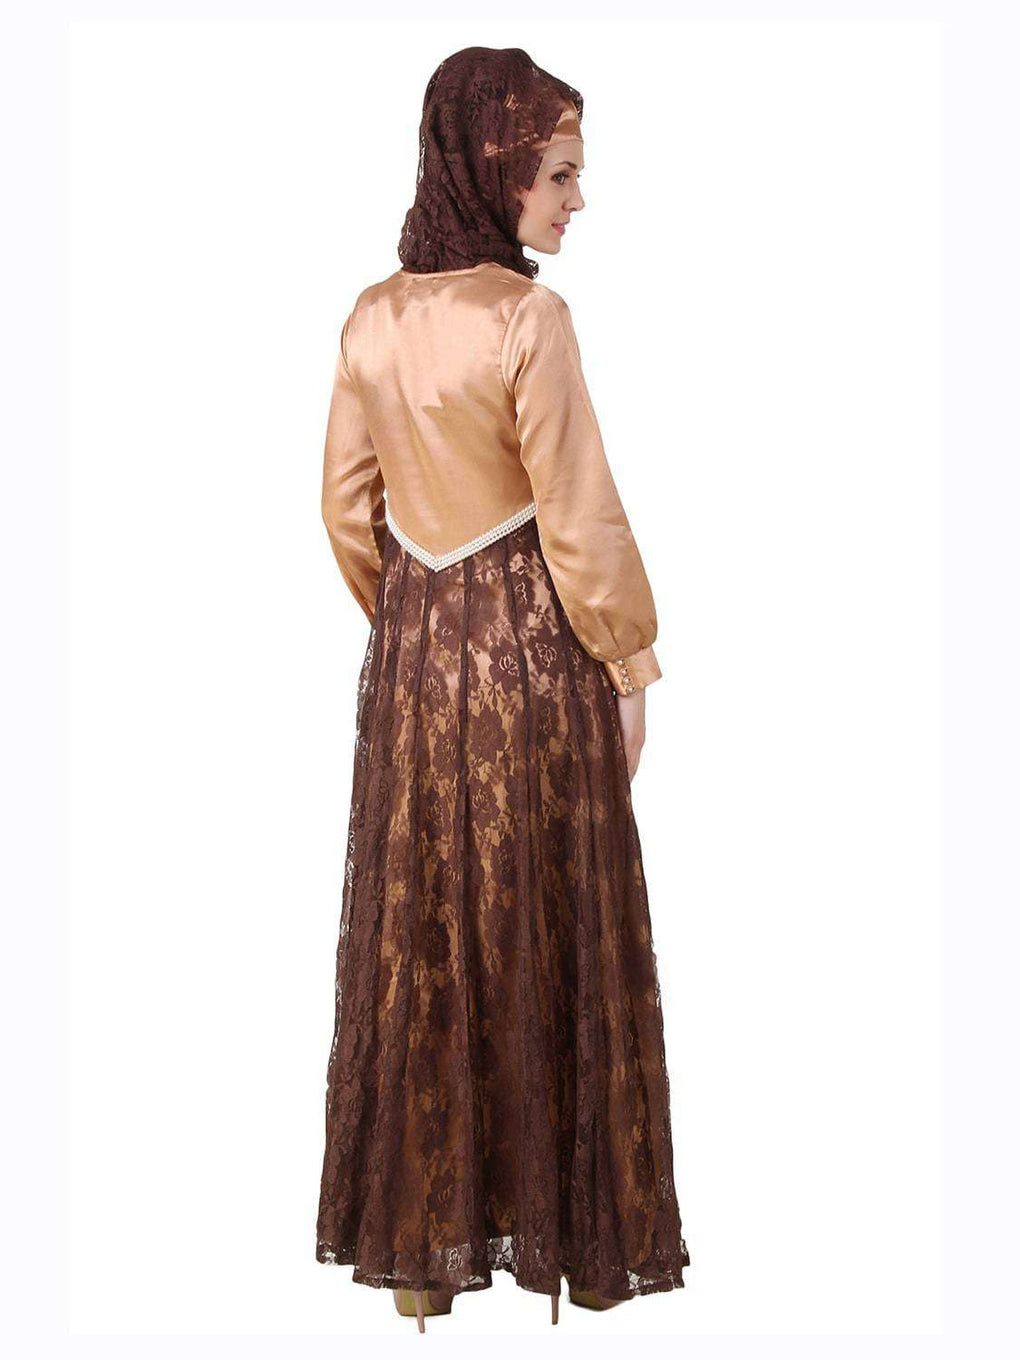 Mahrosh Copper Satin & Brown Flower Net Abaya